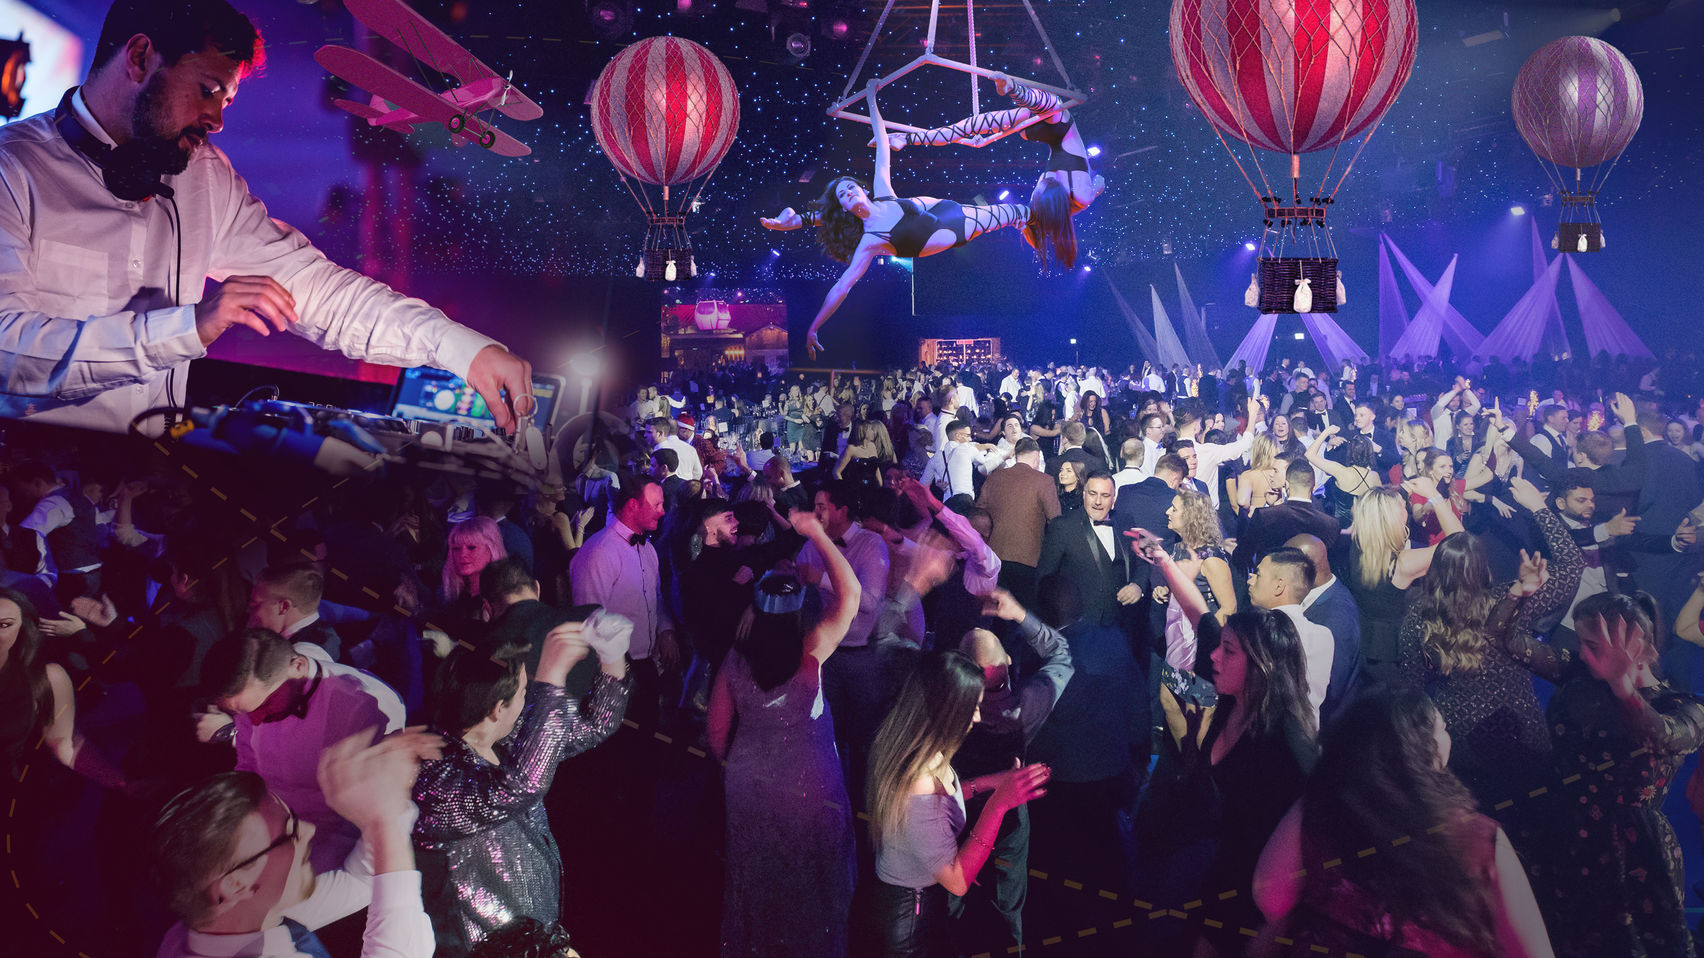 party scene with hot air balloons